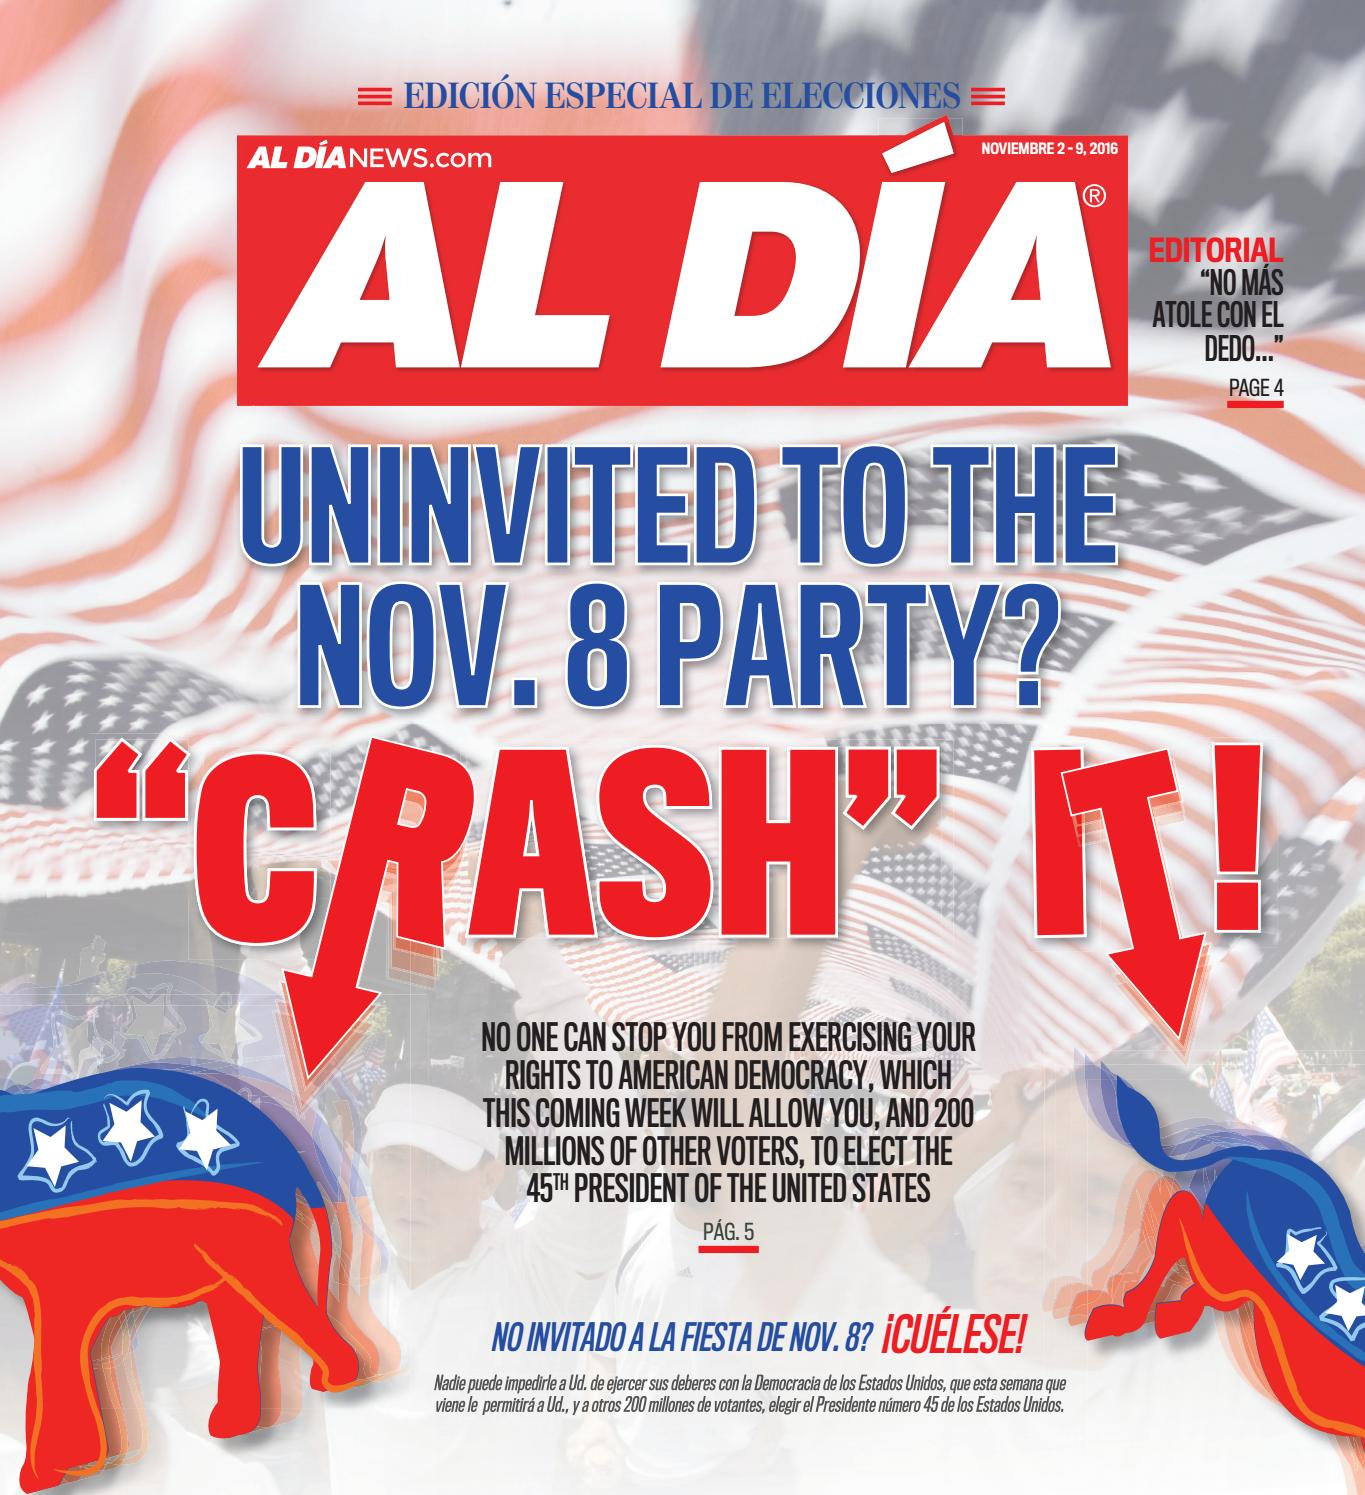 AL DÍA NEWS November 2 - 9, 2016 by AL DÍA NEWS - issuu